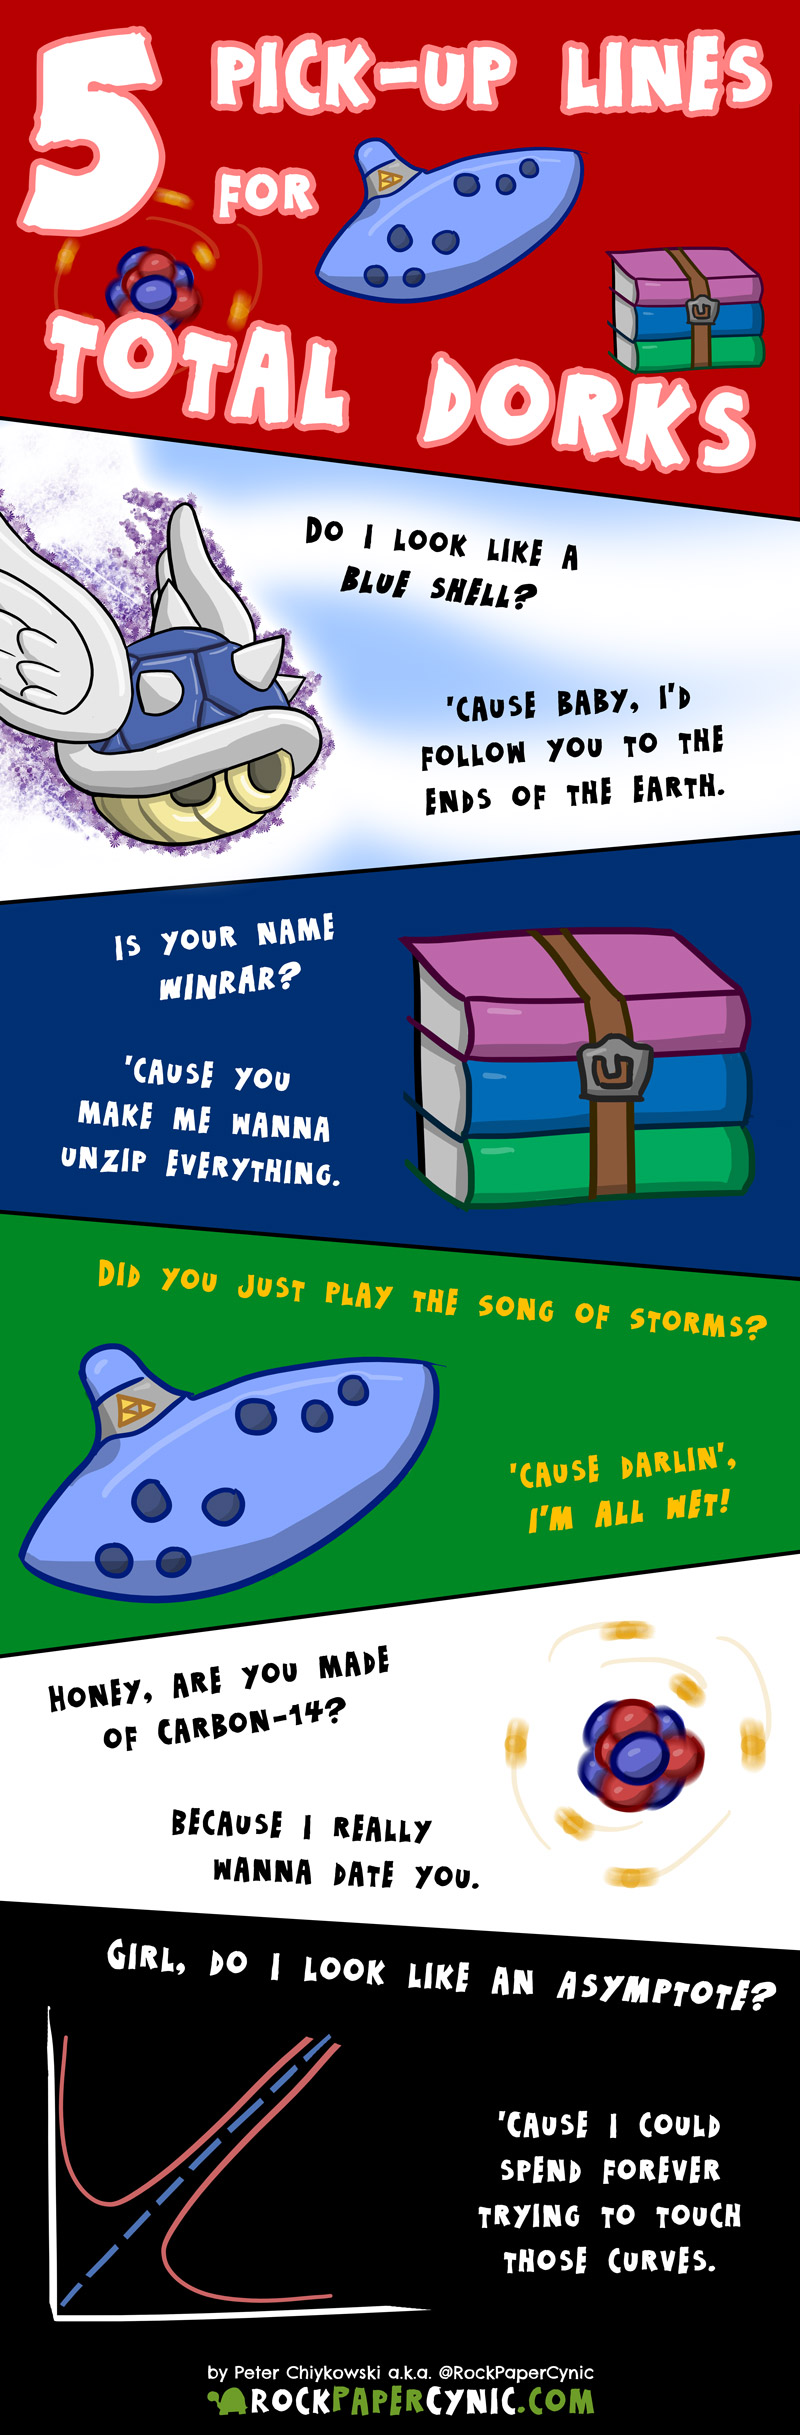 pick-up lines for those who love Carbon-14, blue shells, Song of Storms, WinRAR and asymptote